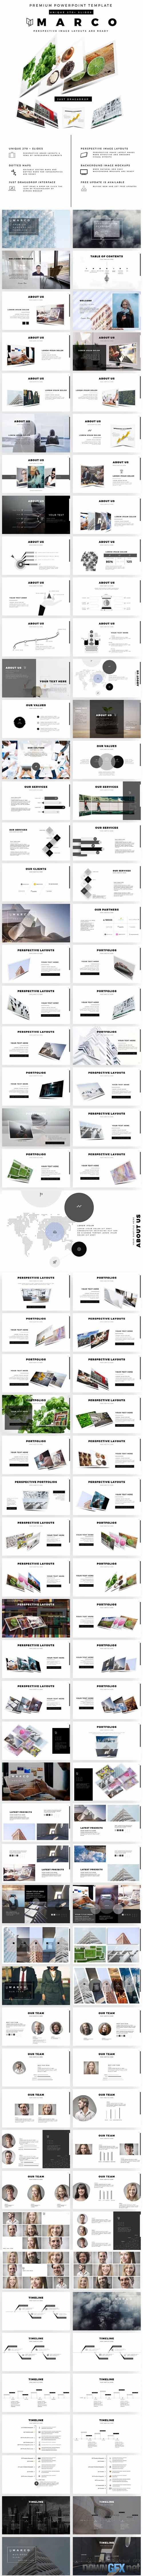 Marco Premium PowerPoint Template 20408897